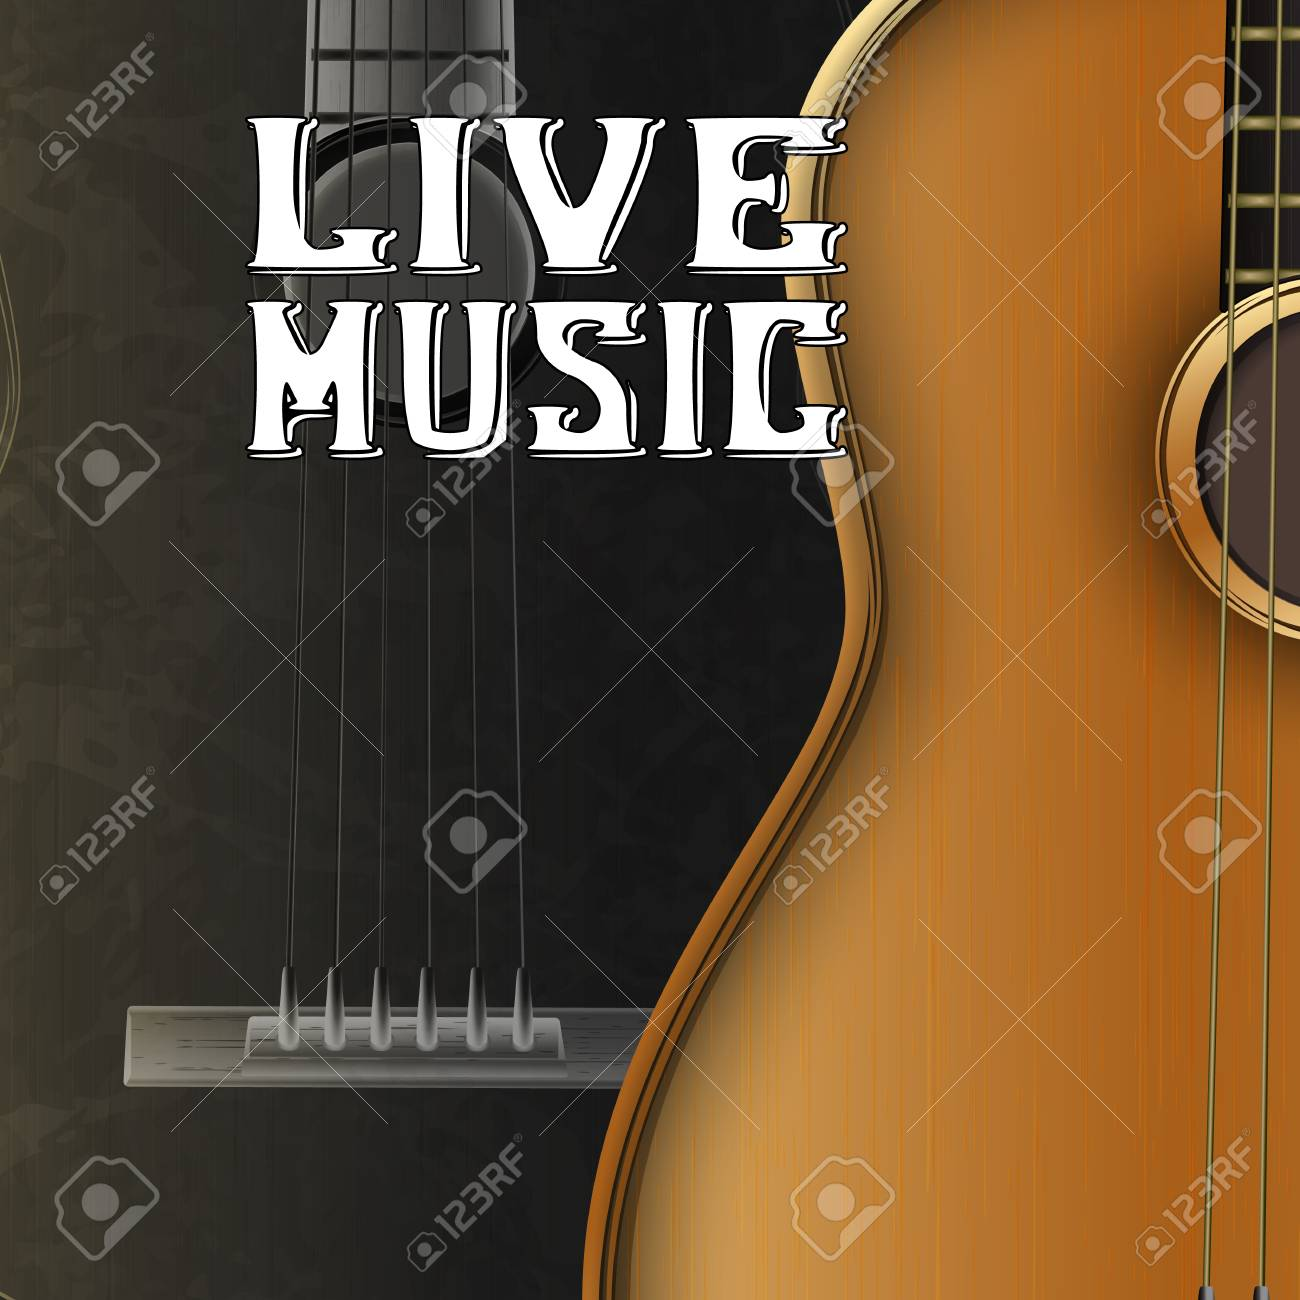 Live Guitar Music Banner Design Royalty Free Cliparts Vectors And Stock Illustration Image 92056851